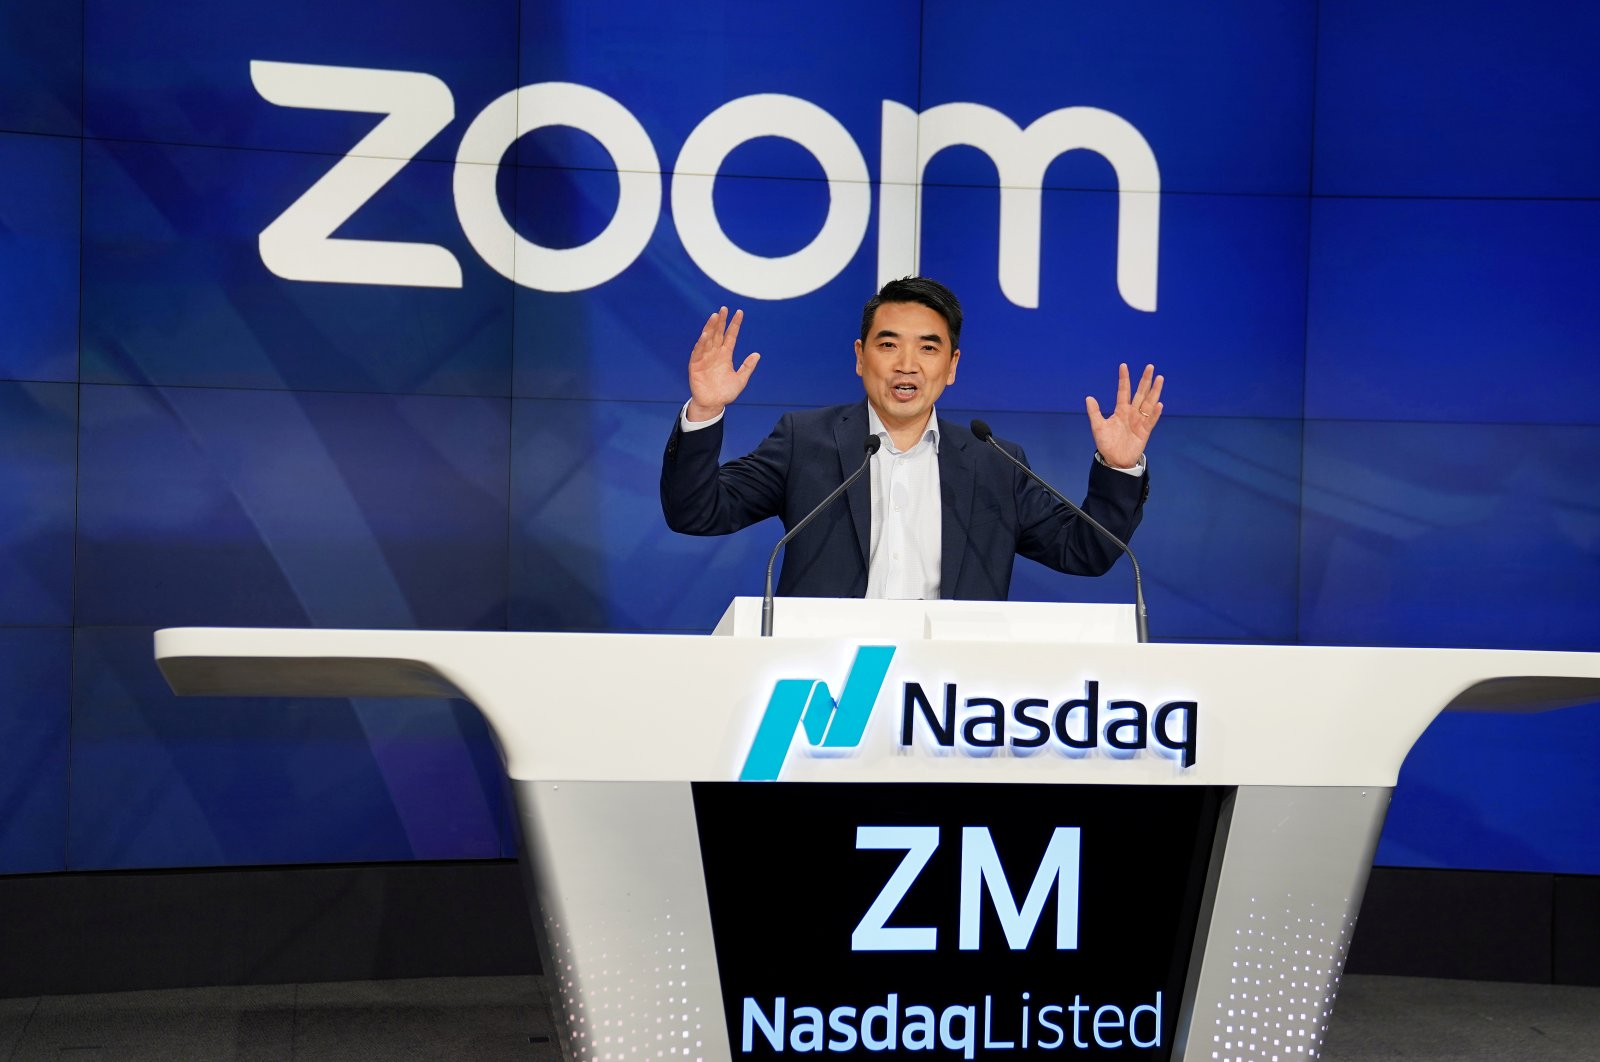 Eric Yuan, CEO of Zoom Video Communications takes part in a bell-ringing ceremony at the NASDAQ MarketSite in New York, New York, U.S., April 18, 2019. (Reuters Photo)